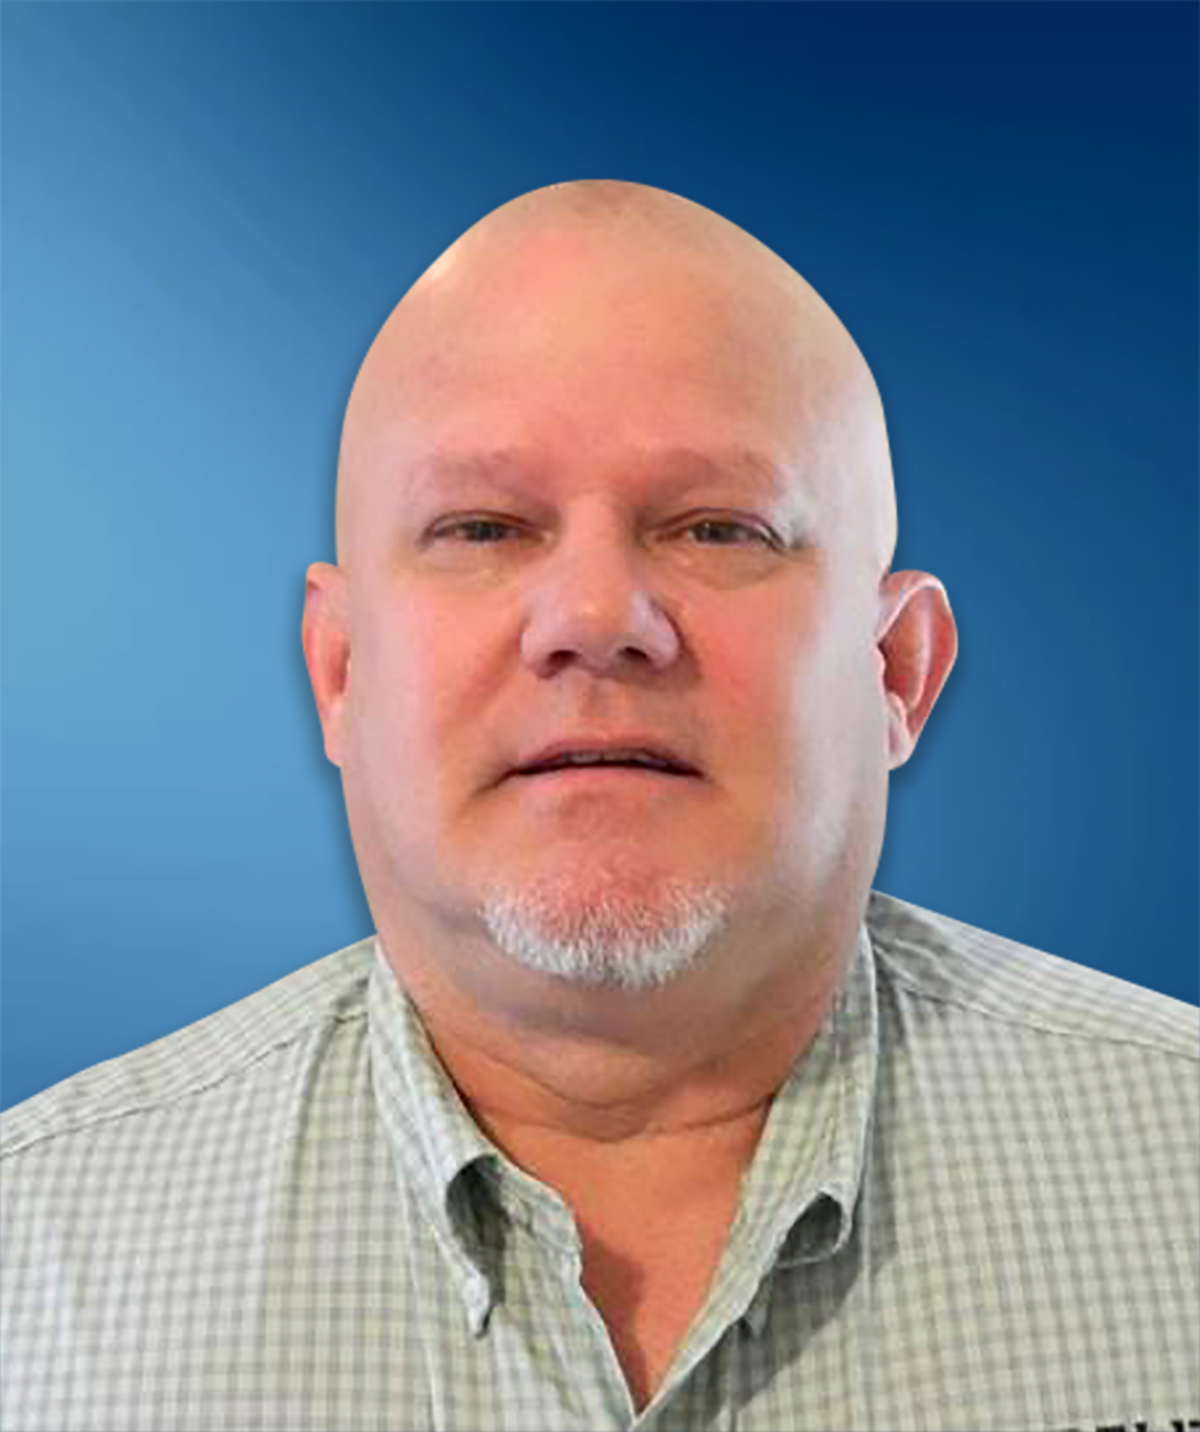 Heather West Pr Client News Kolbe Highlights Both: Heather West Public Relations :: Tubelite Adds Jeff Tate